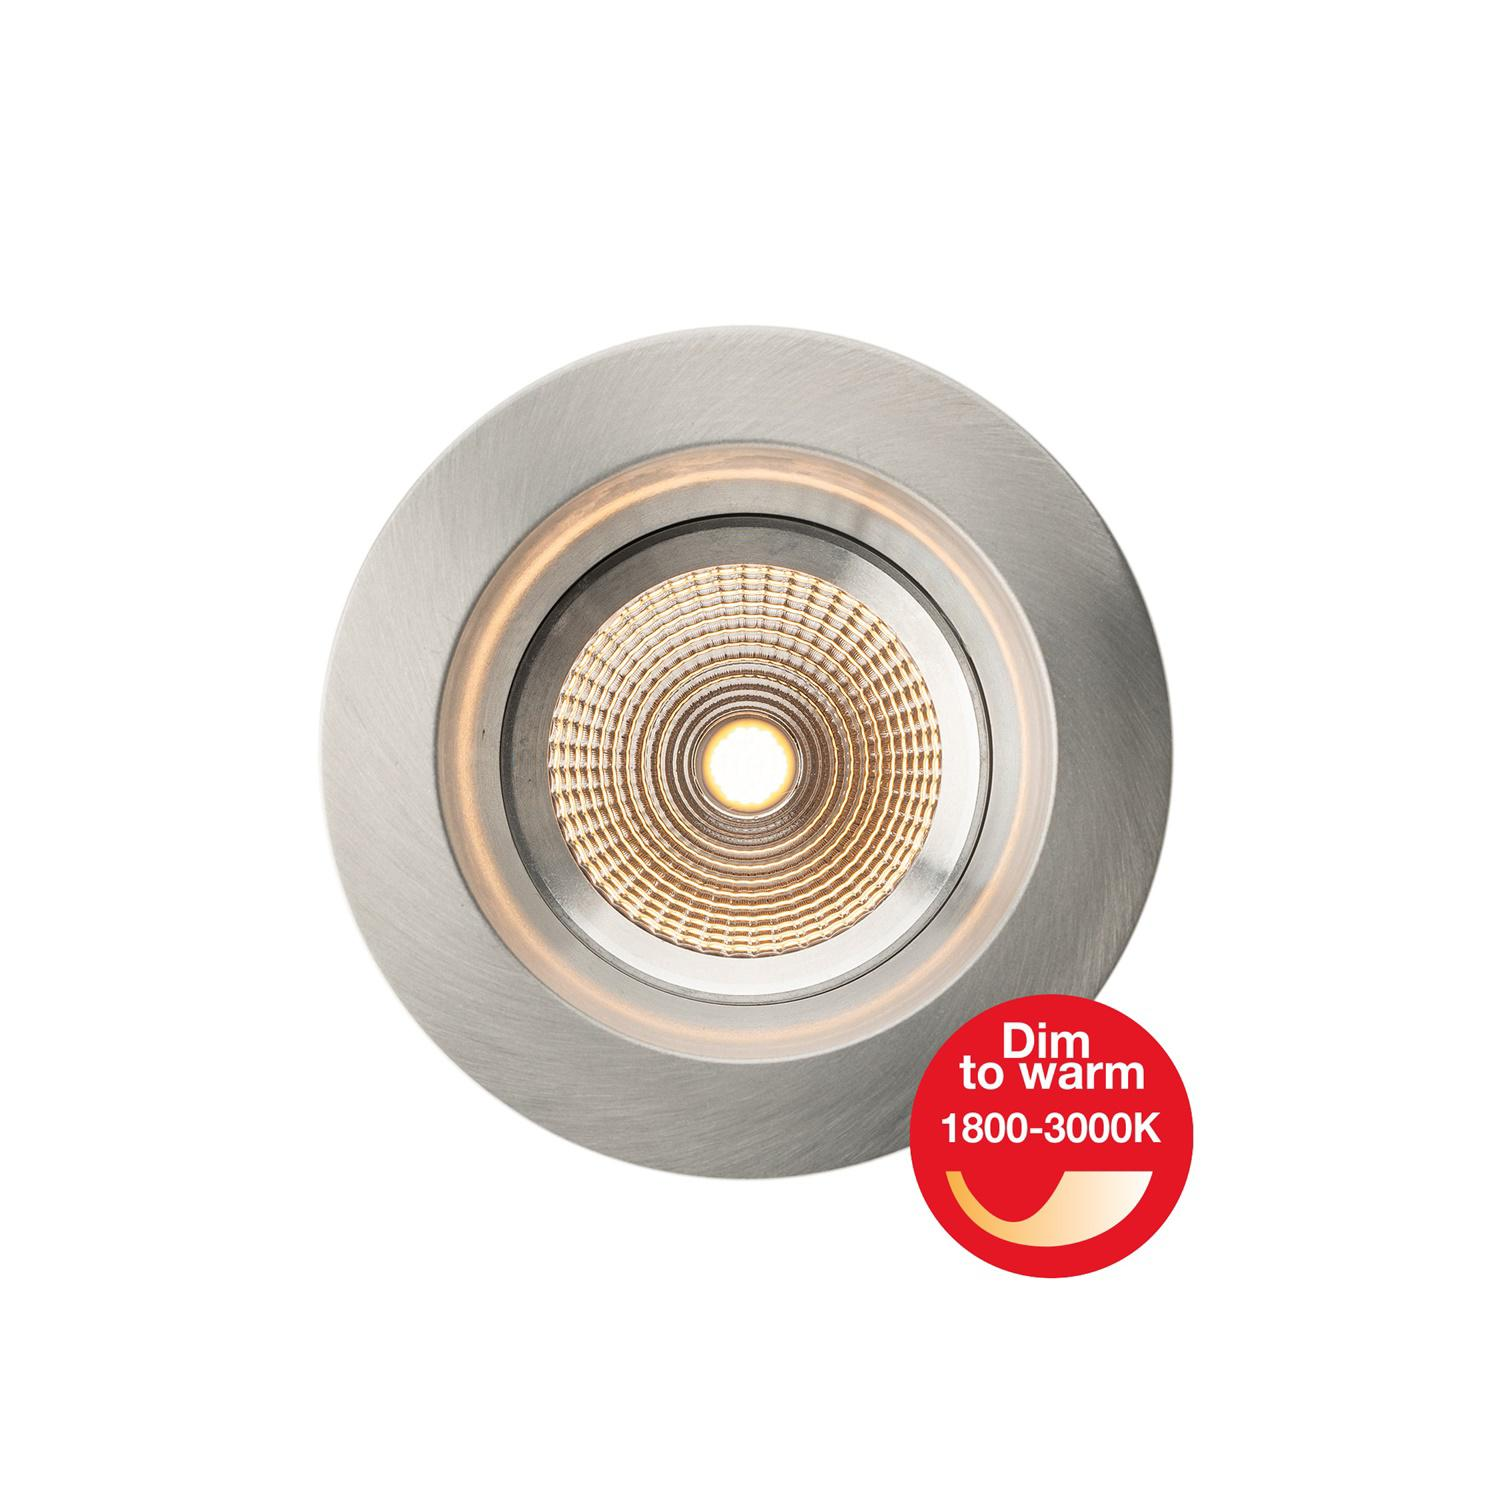 SLC LED-Einbaustrahler ONE SOFT Alu (mit Dim-To-Warm) SLC1152